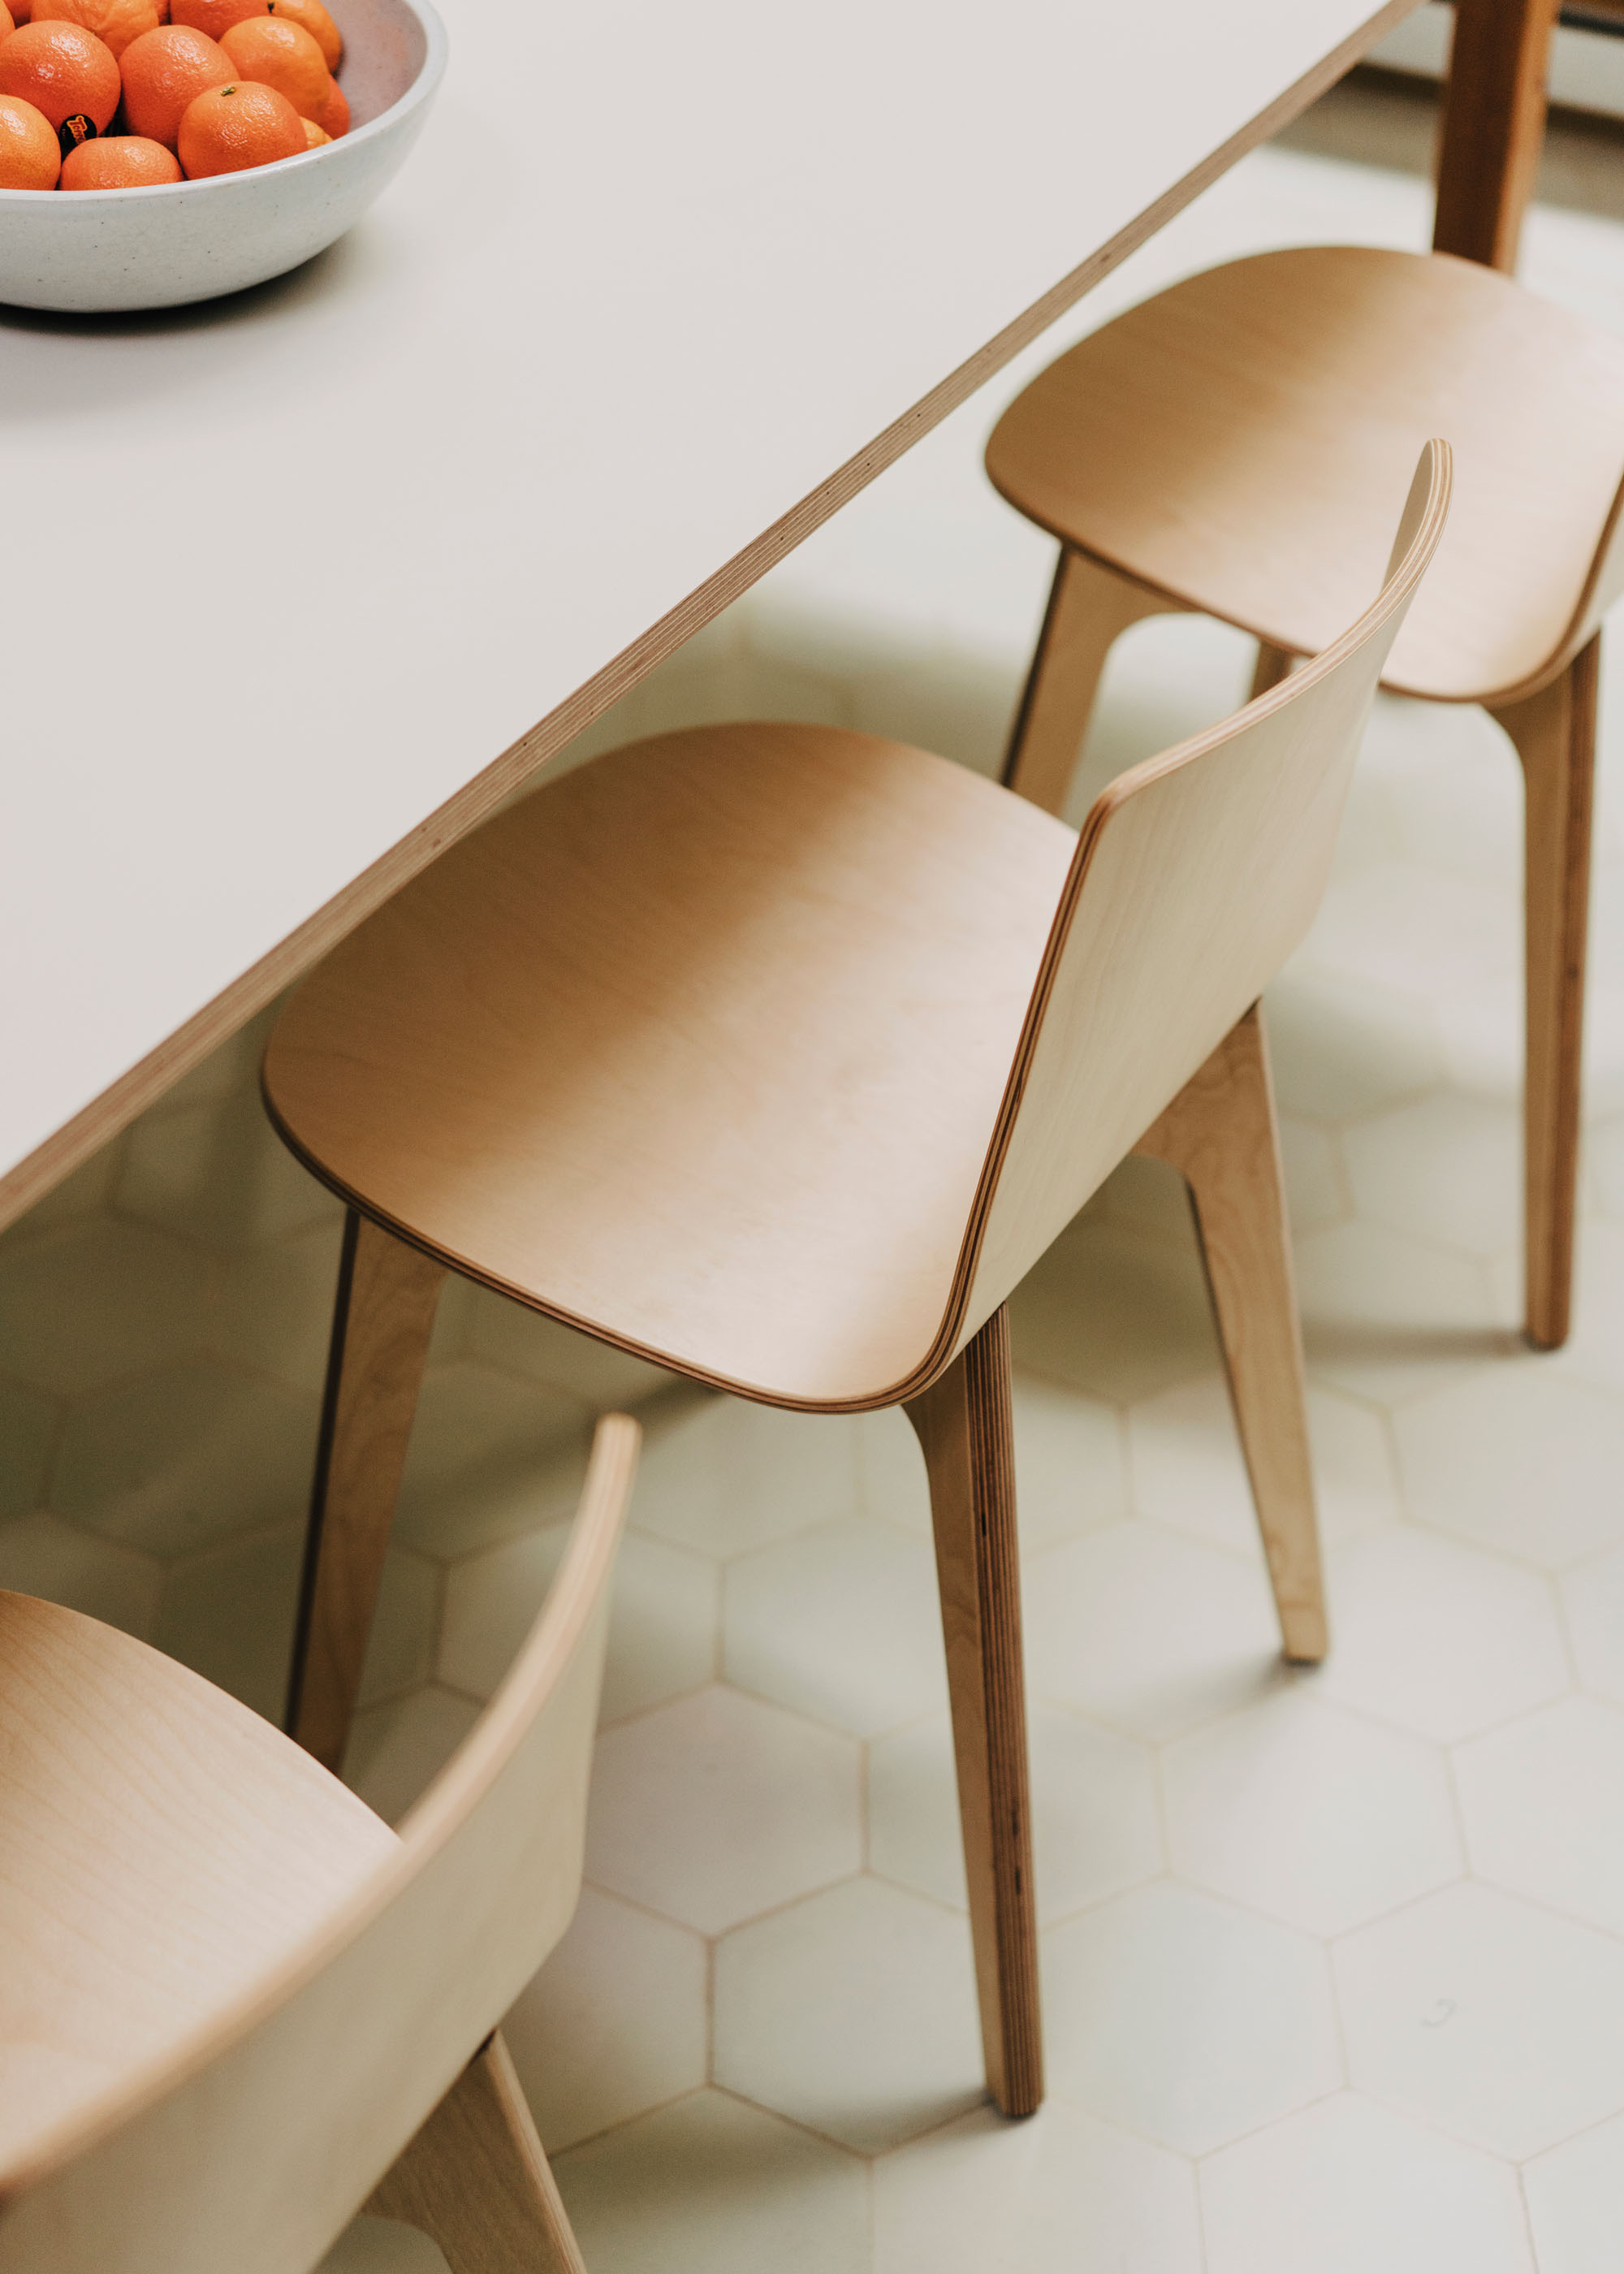 #furniture #enea #design #clase #chairs #interiors